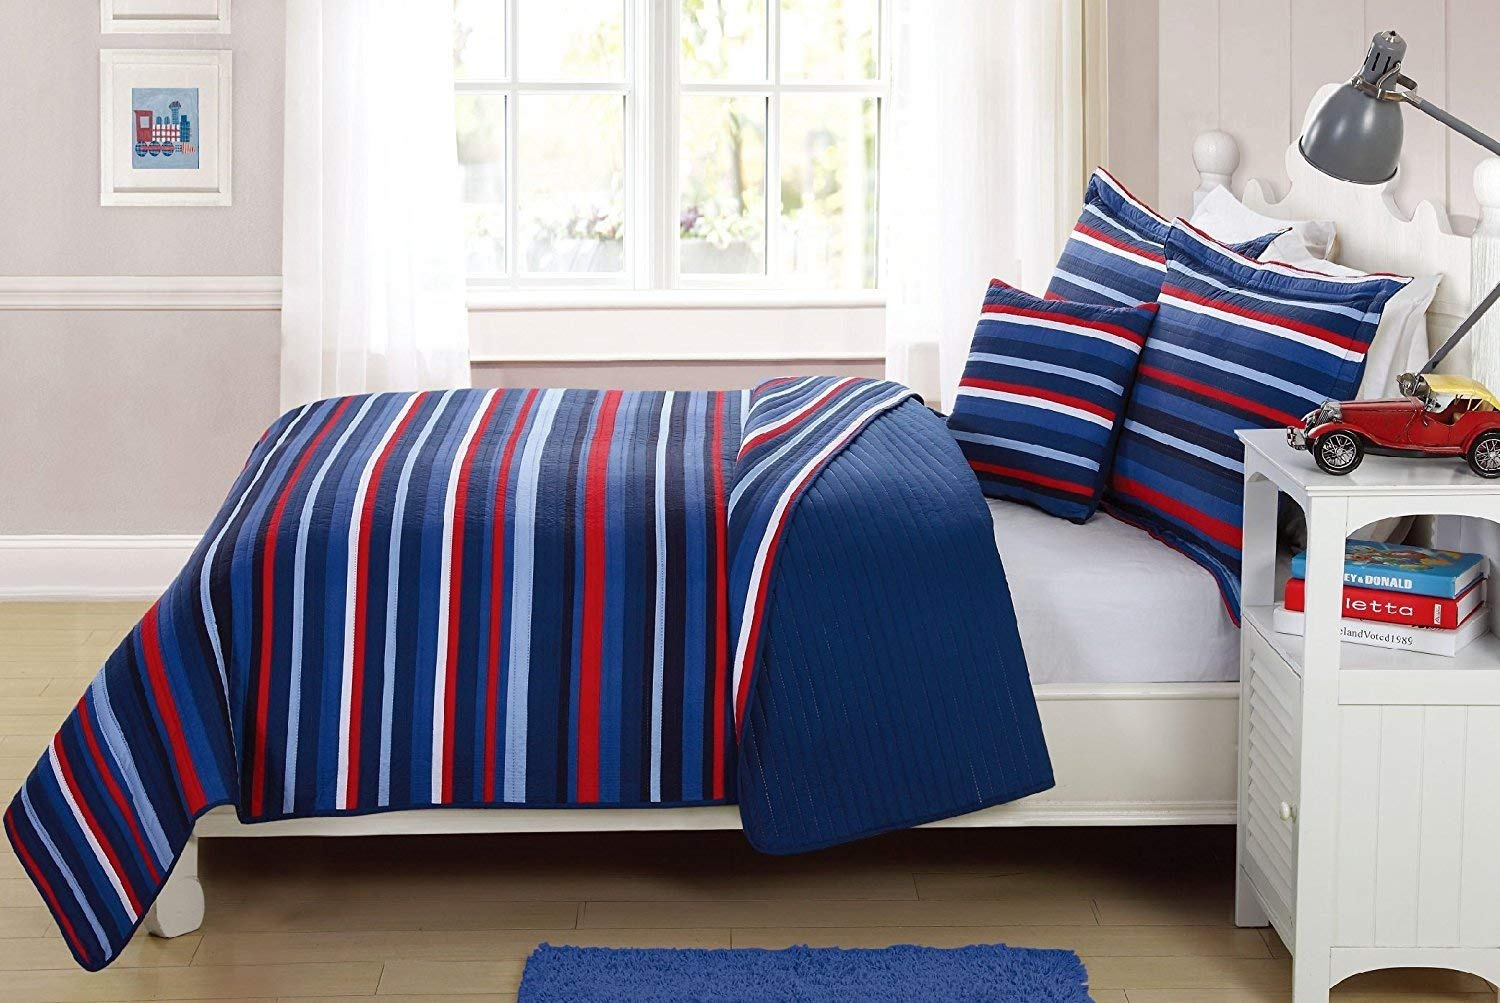 Fancy Linen Bedspread Coverlet 3 PC Twin Size Stripe Navy Blue Light blue Red White Reversible New #Ocean Breeze